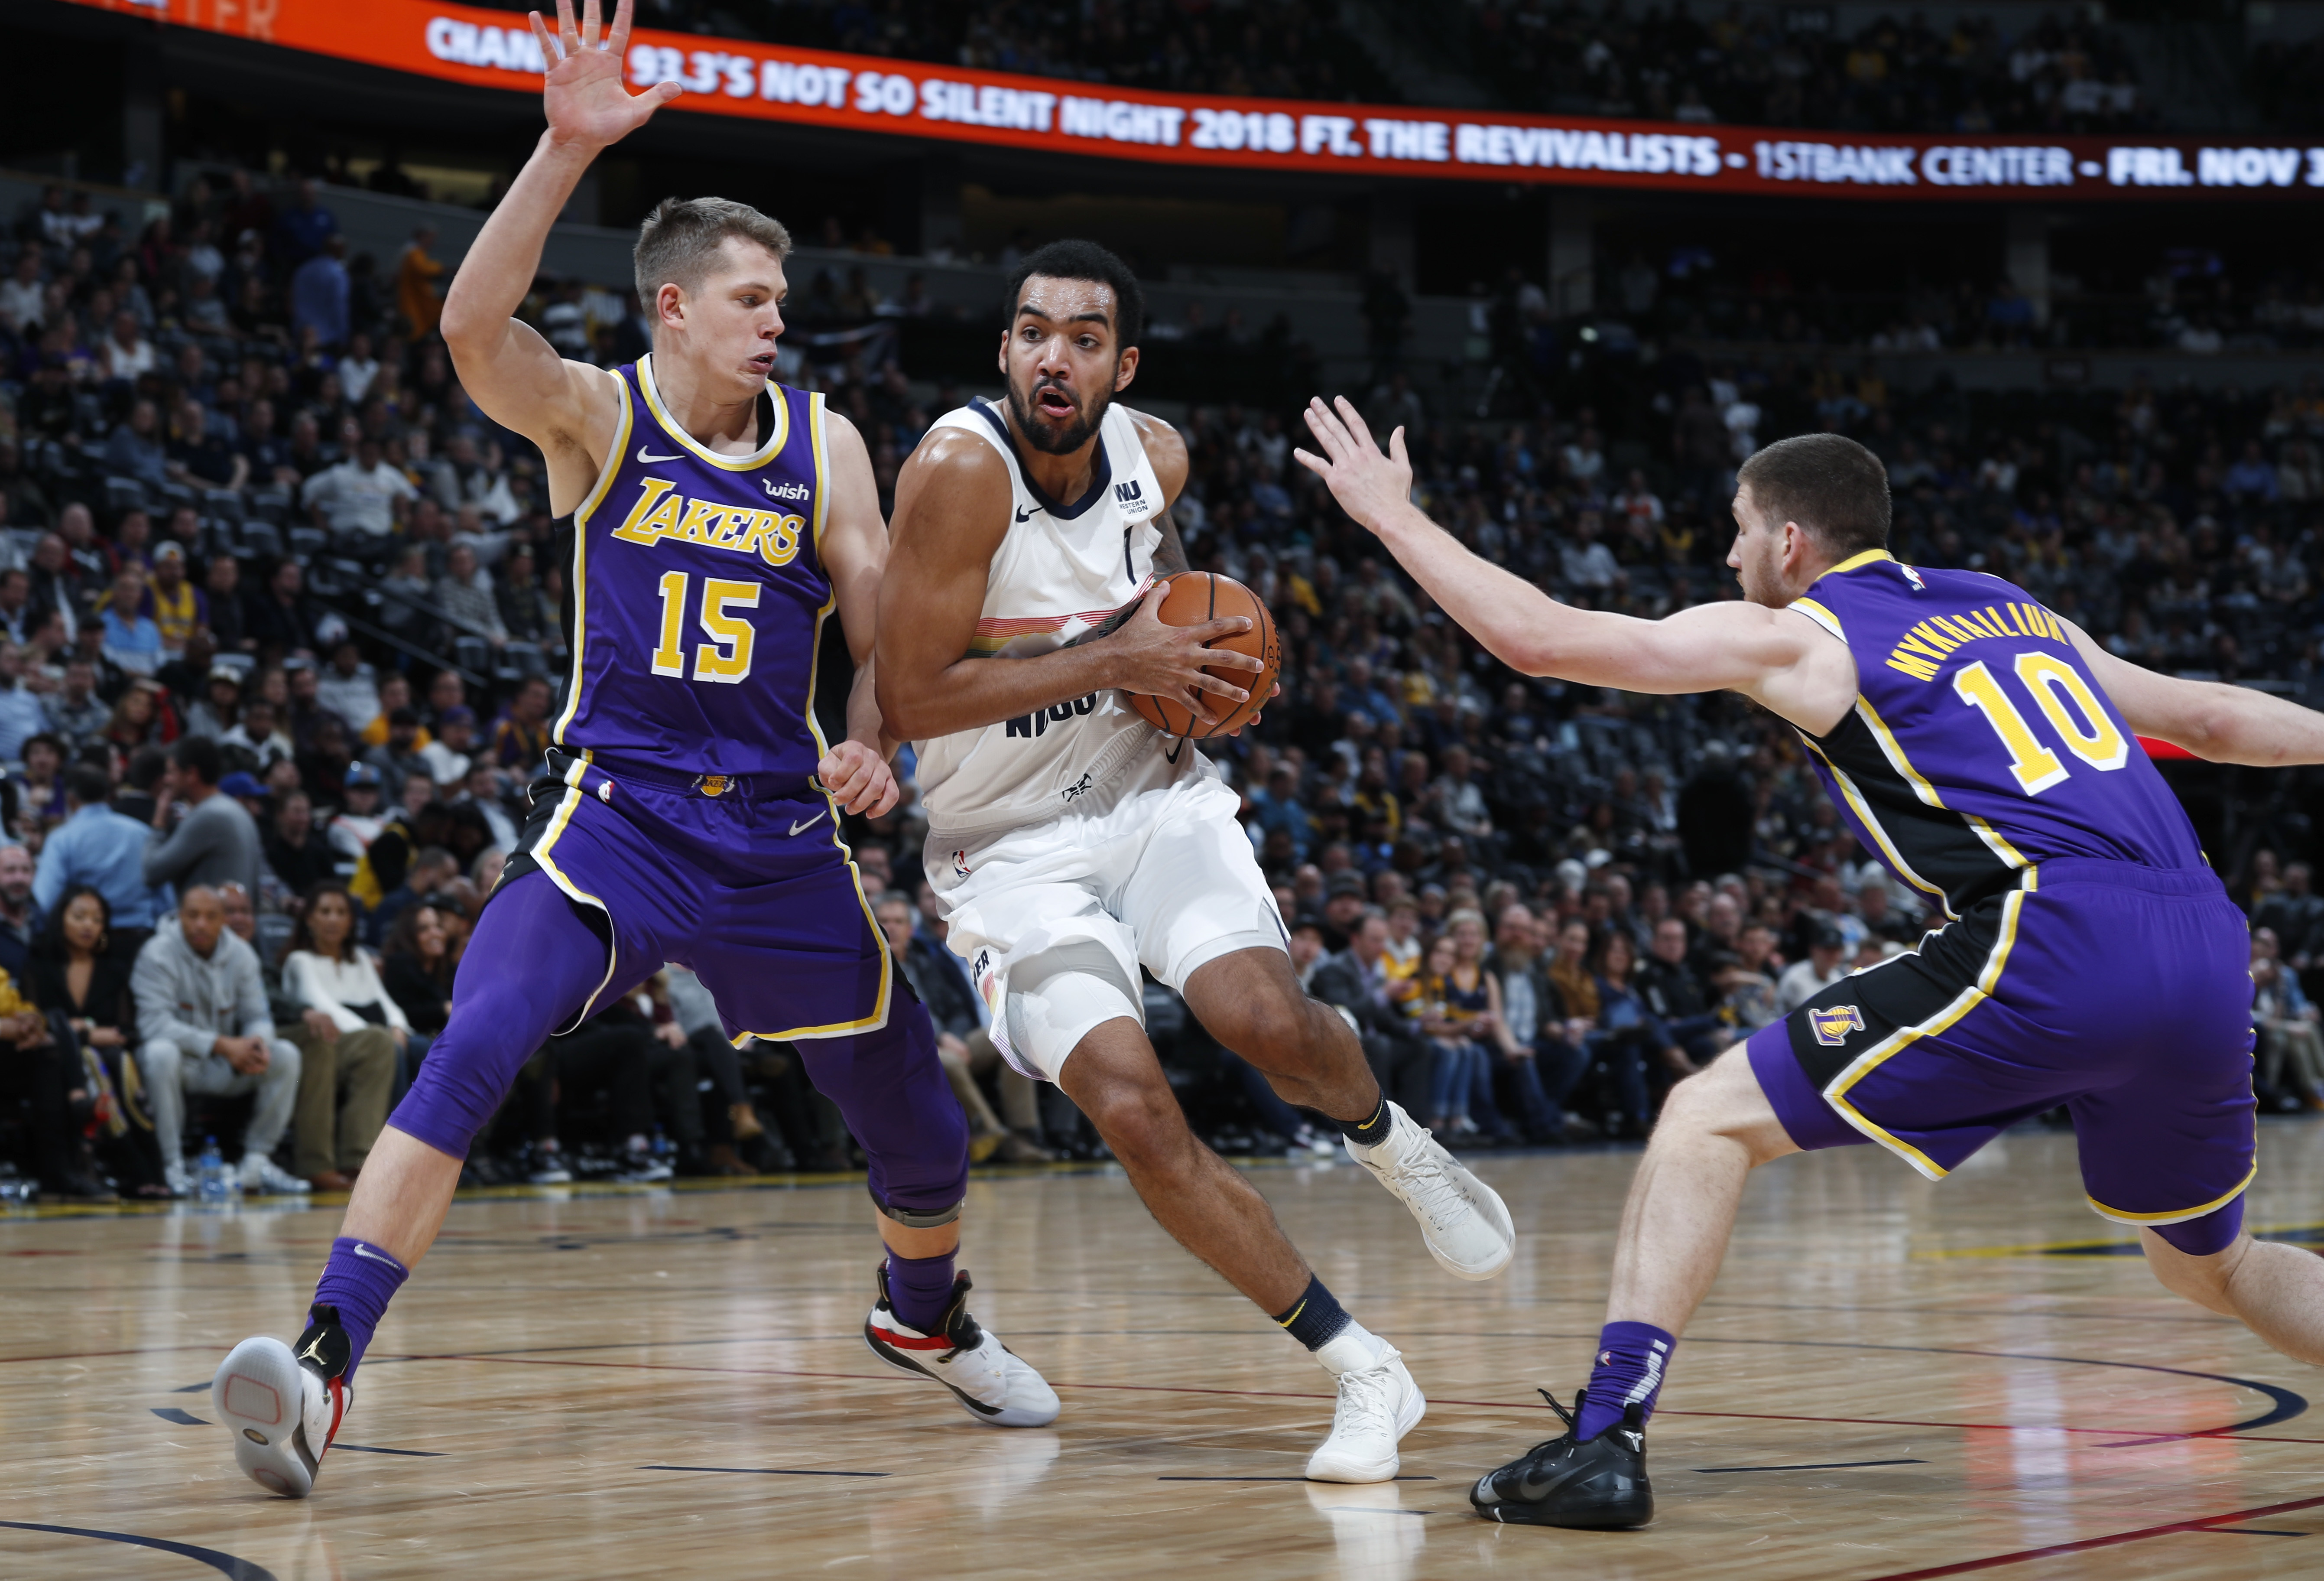 ff0fd781104a Nuggets roll to biggest win over Lakers with 117-85 romp - Sentinel ...